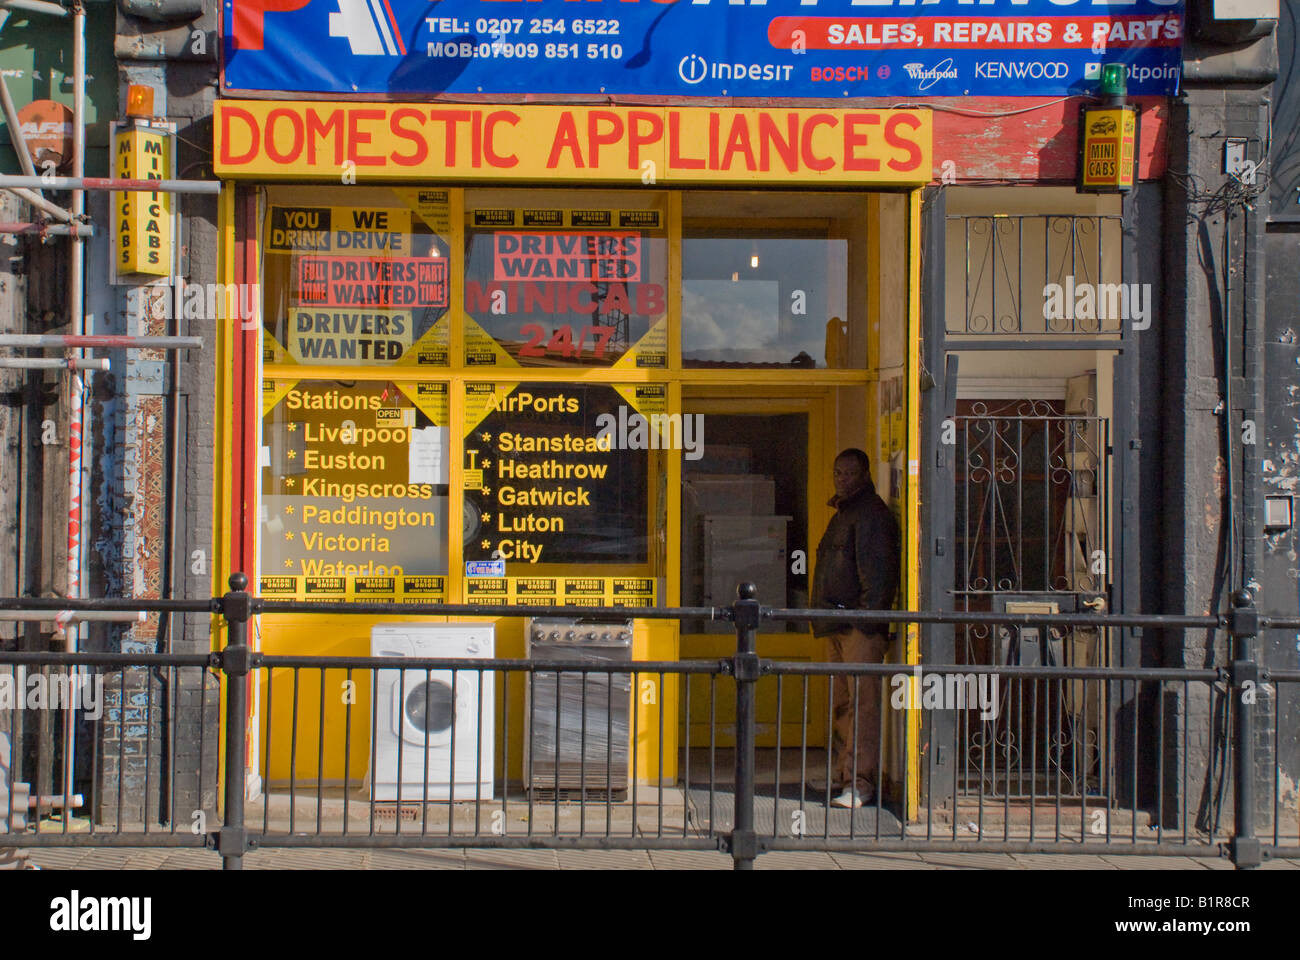 A rundown shop selling white goods on Dalston Lane, in the inner city Borough of Hackney London - Stock Image